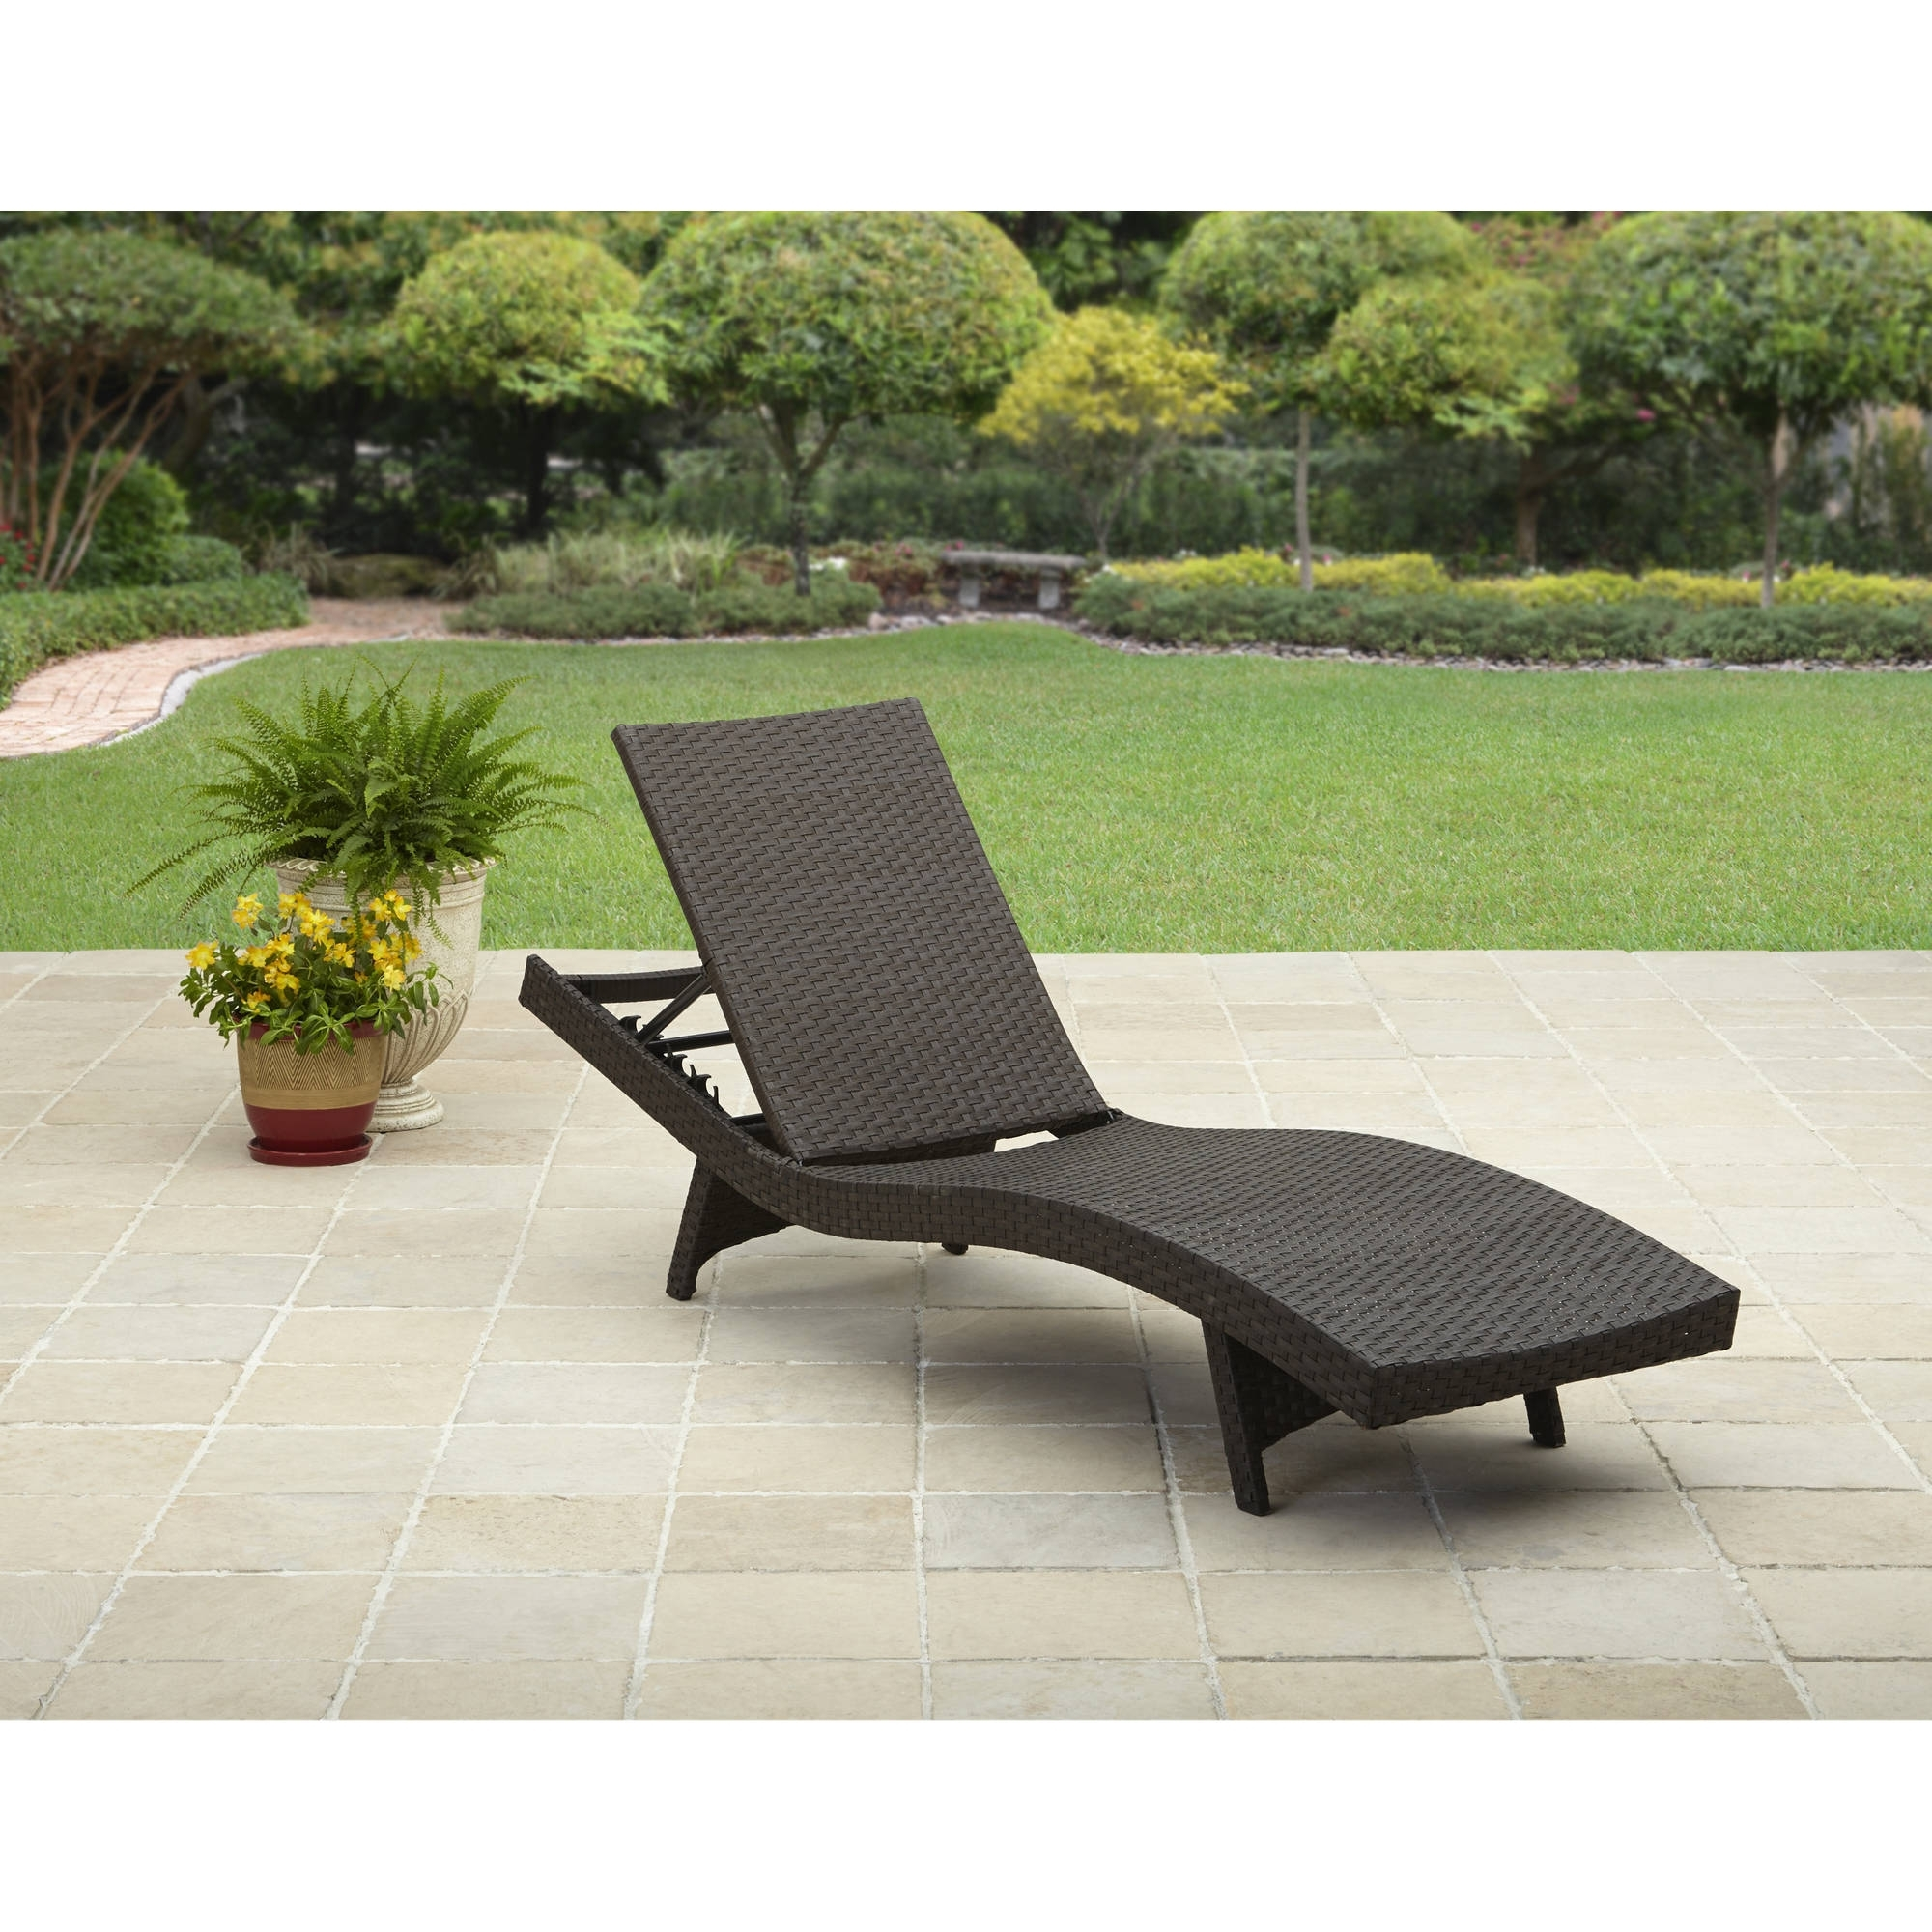 Better Homes And Gardens Avila Beach Chaise – Walmart With Most Recent Walmart Chaise Lounges (View 2 of 15)